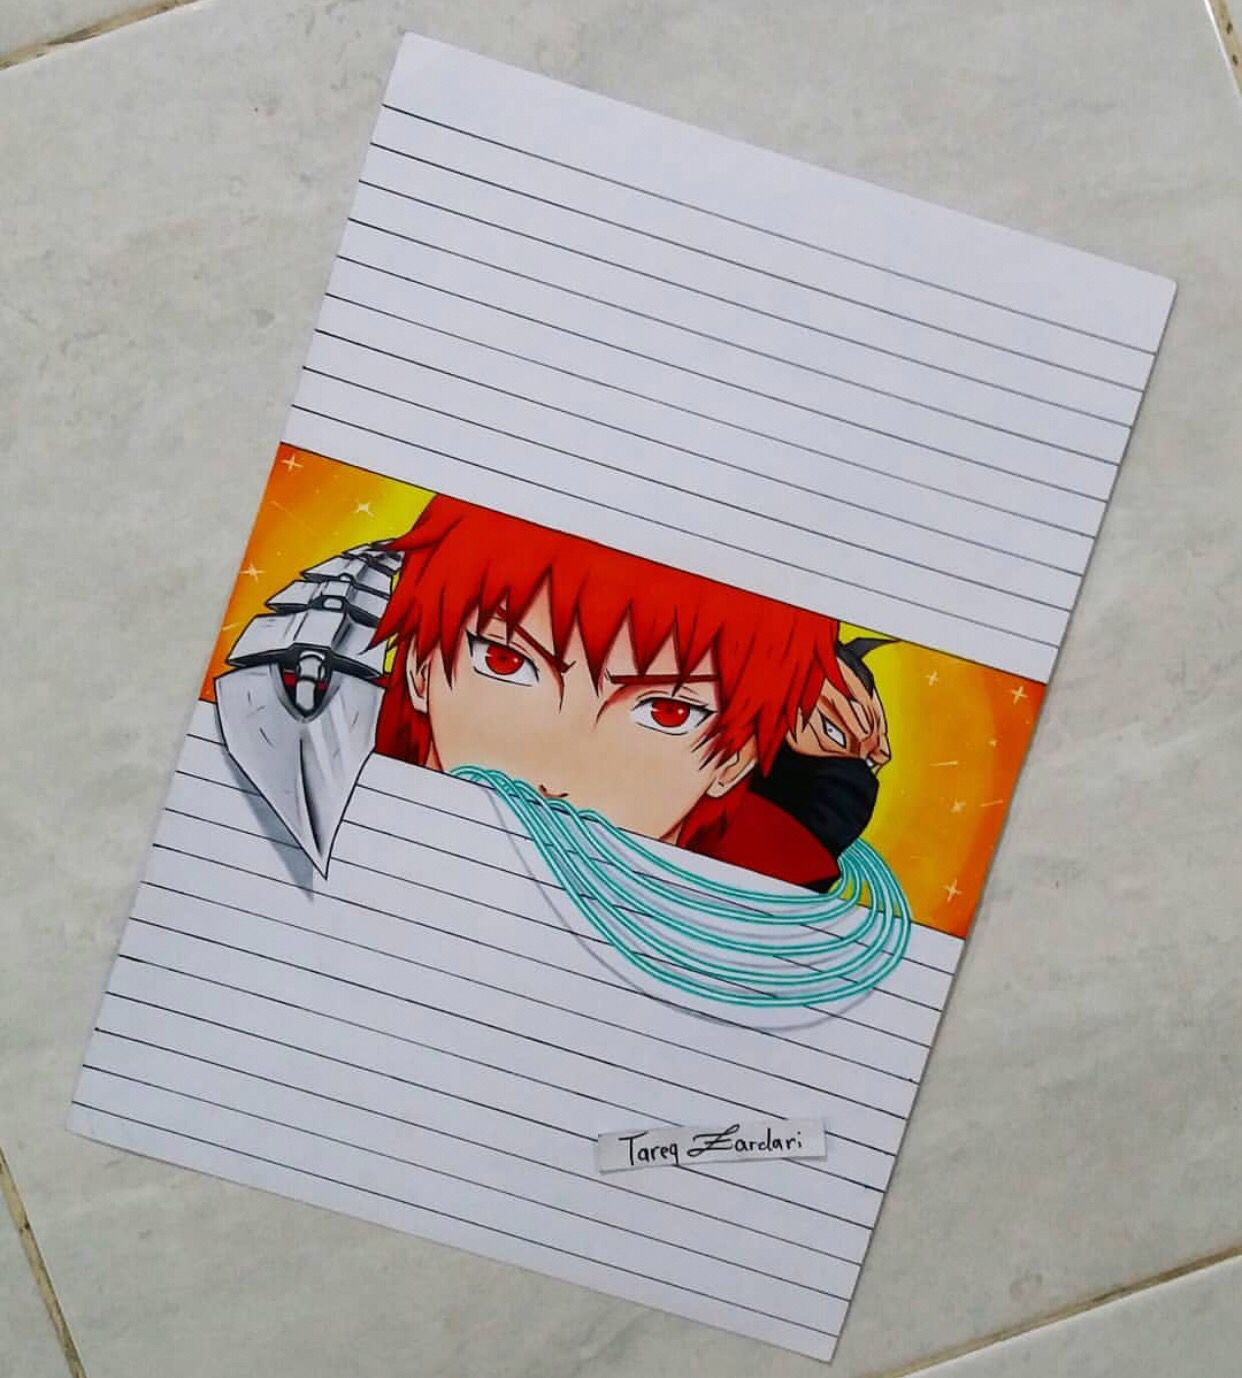 Sasori By Tareqzardari Are You An Anime Artist